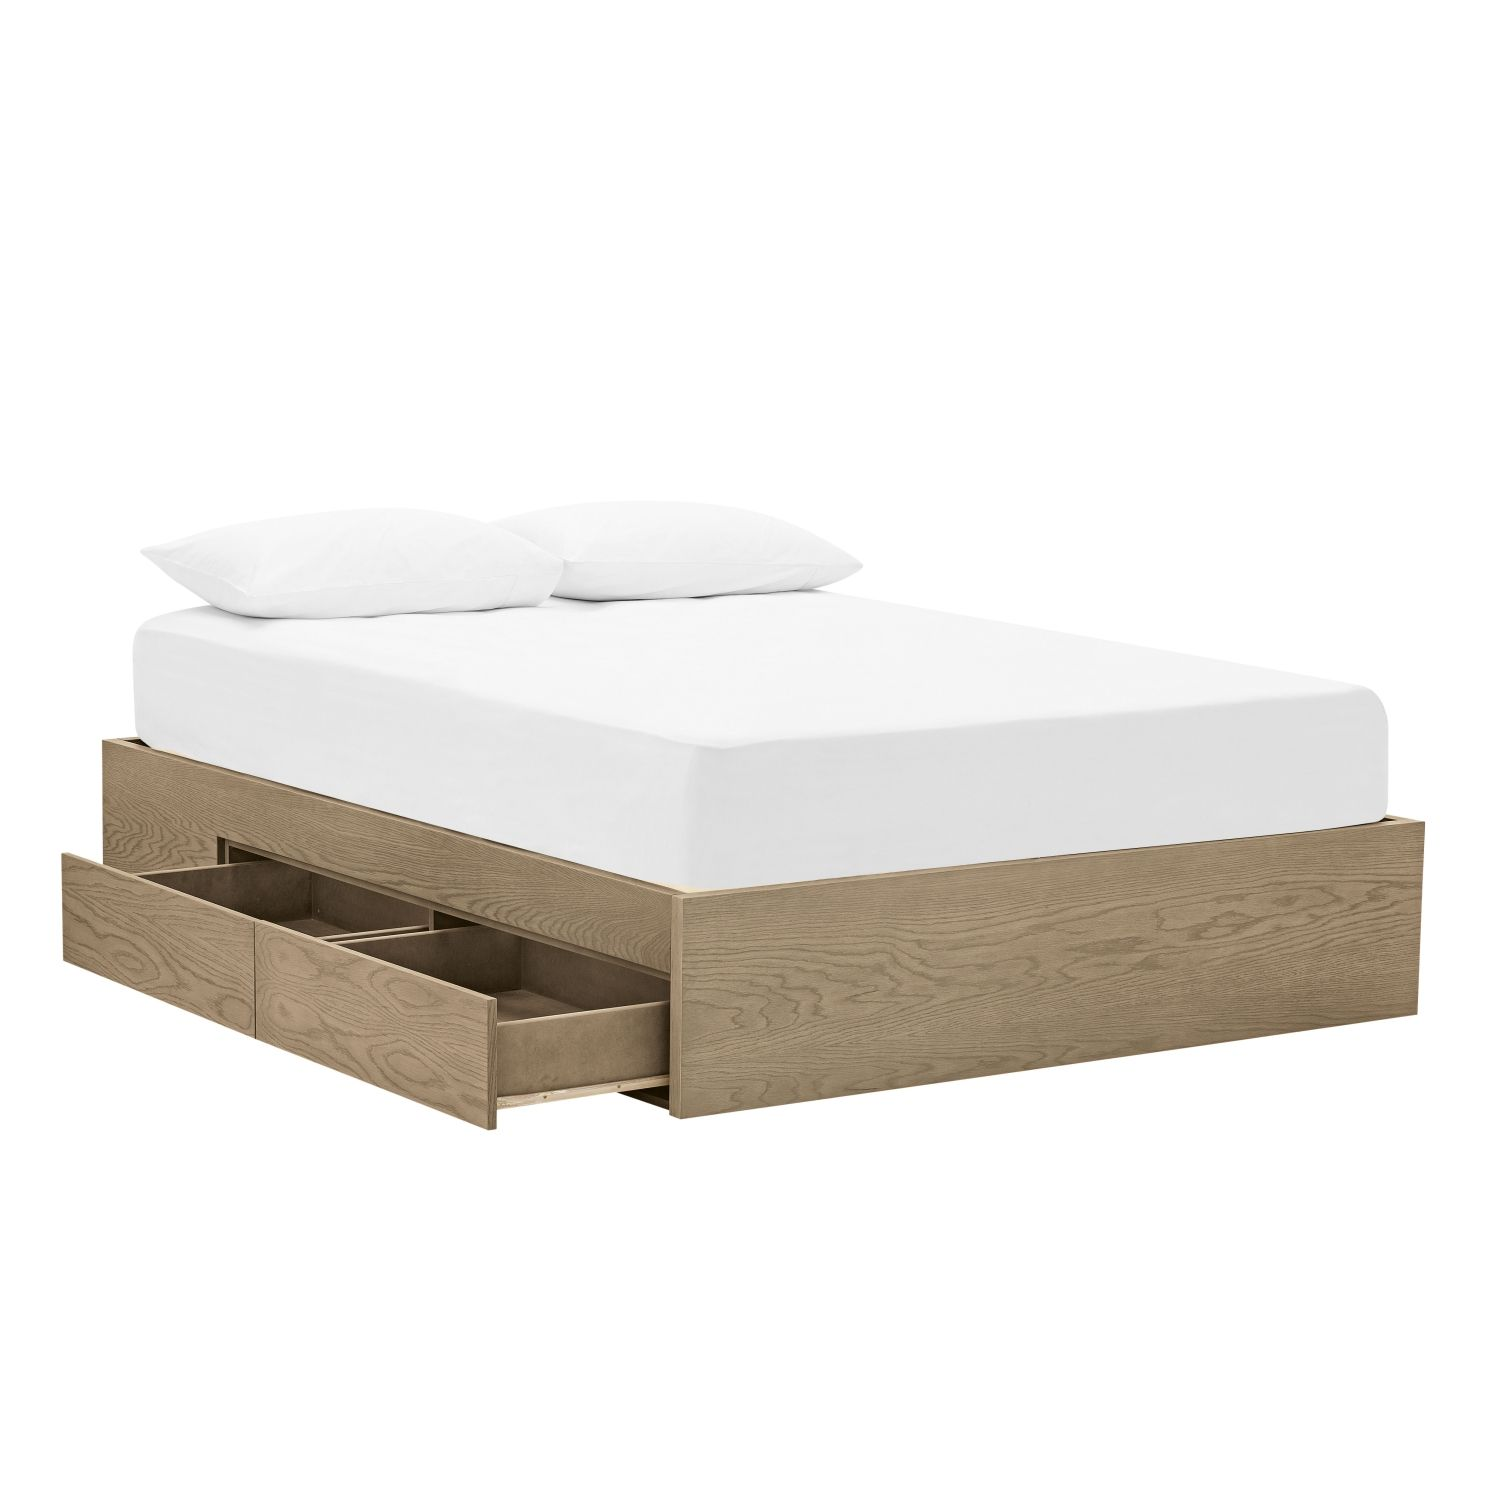 Dror Bed Base From Domayne Online